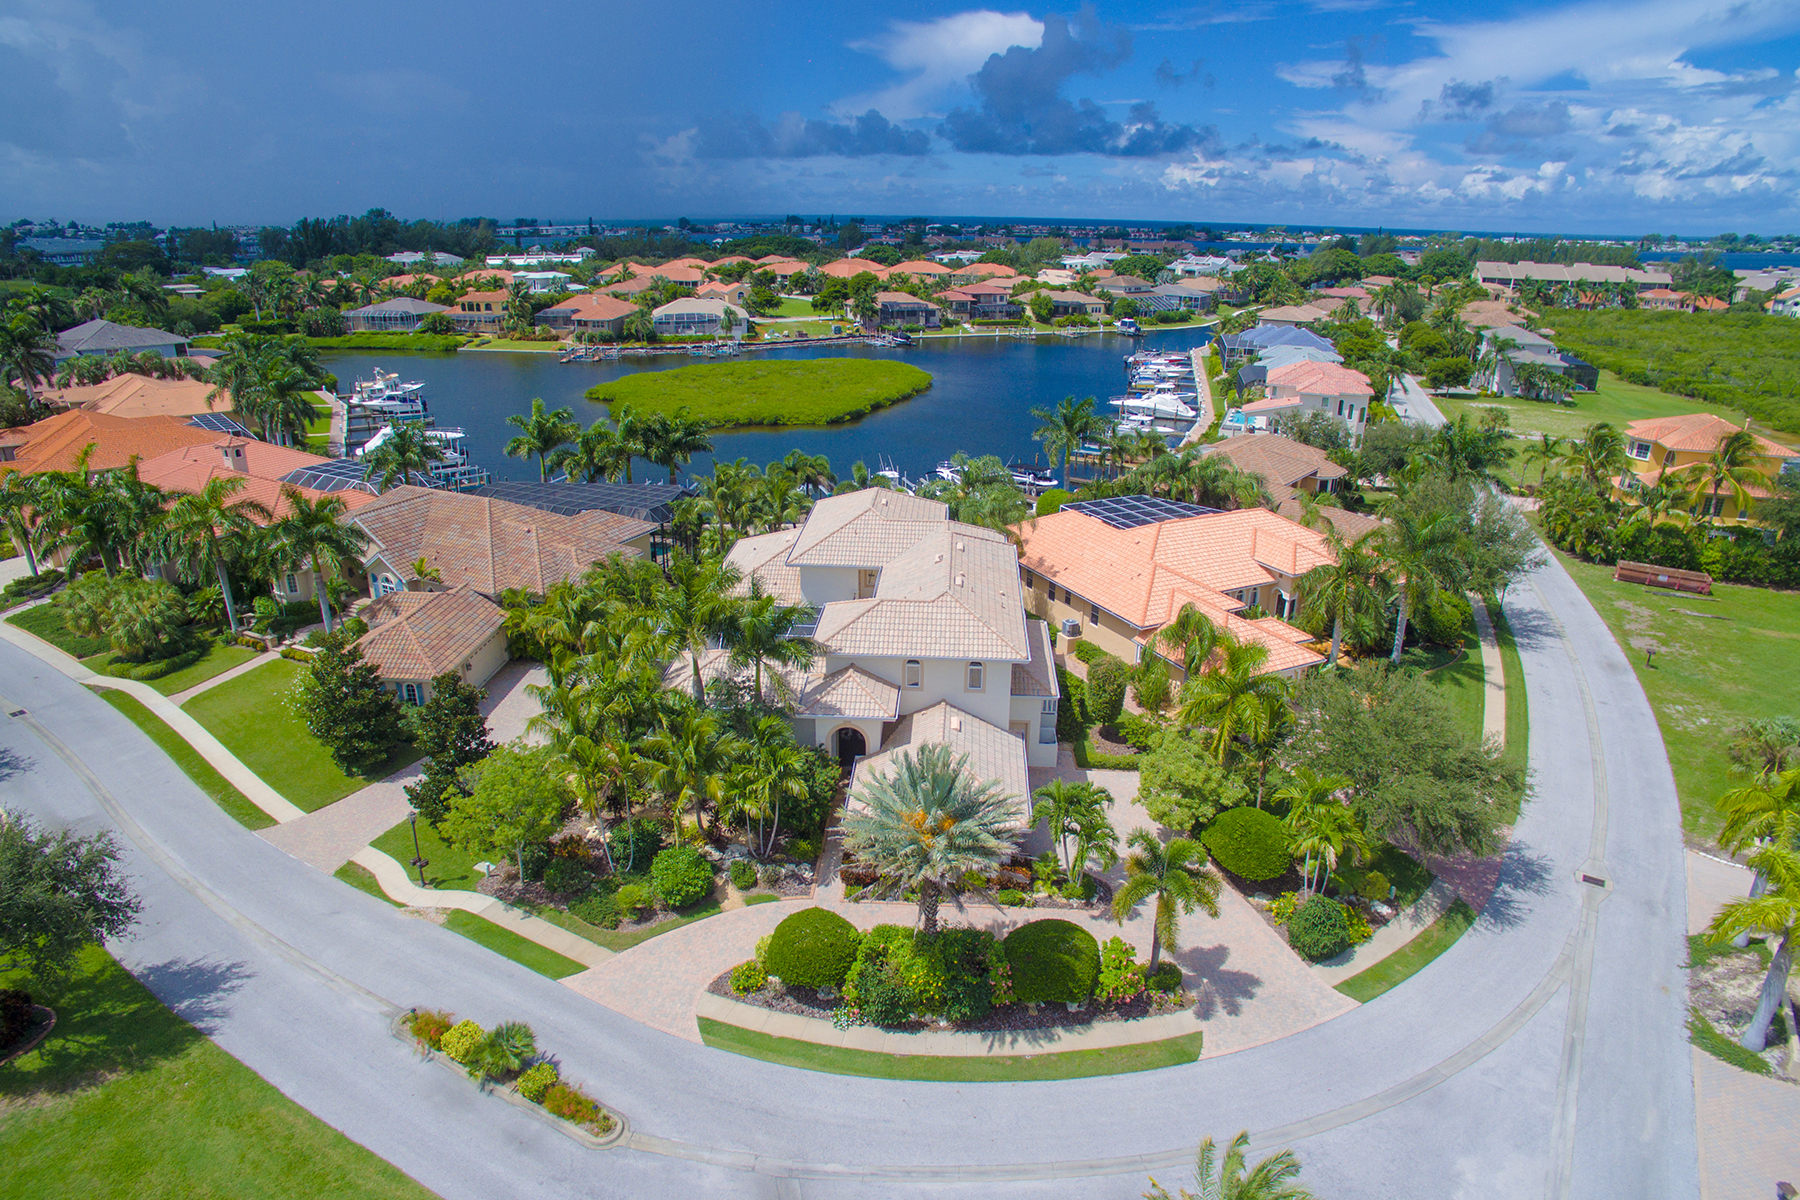 Single Family Home for Sale at HARBOUR LANDINGS ESTATES 4004 Commodore Blvd Cortez, Florida, 34215 United States